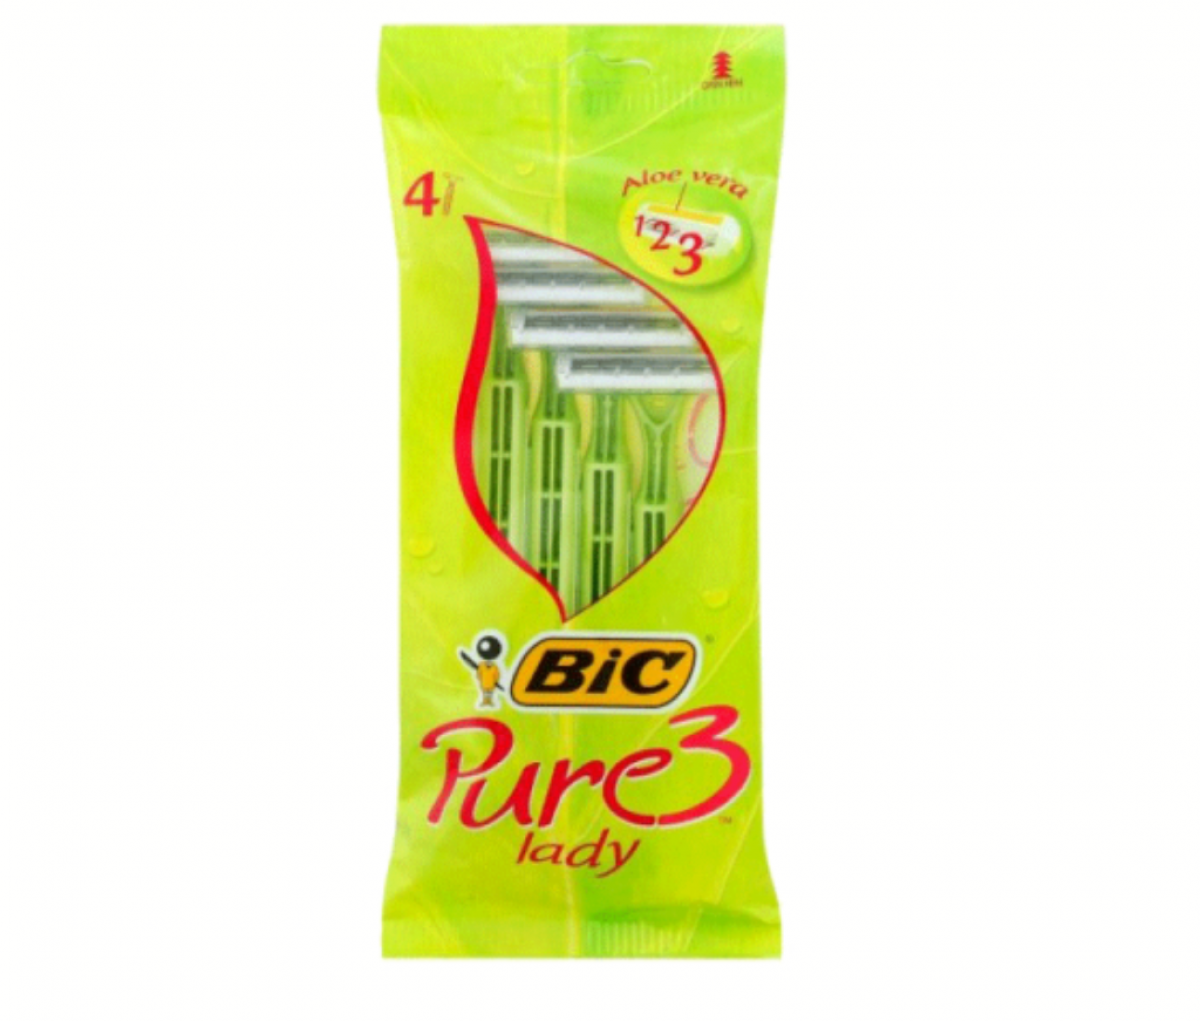 Bic Pure 3 Lady 1x20 Pack